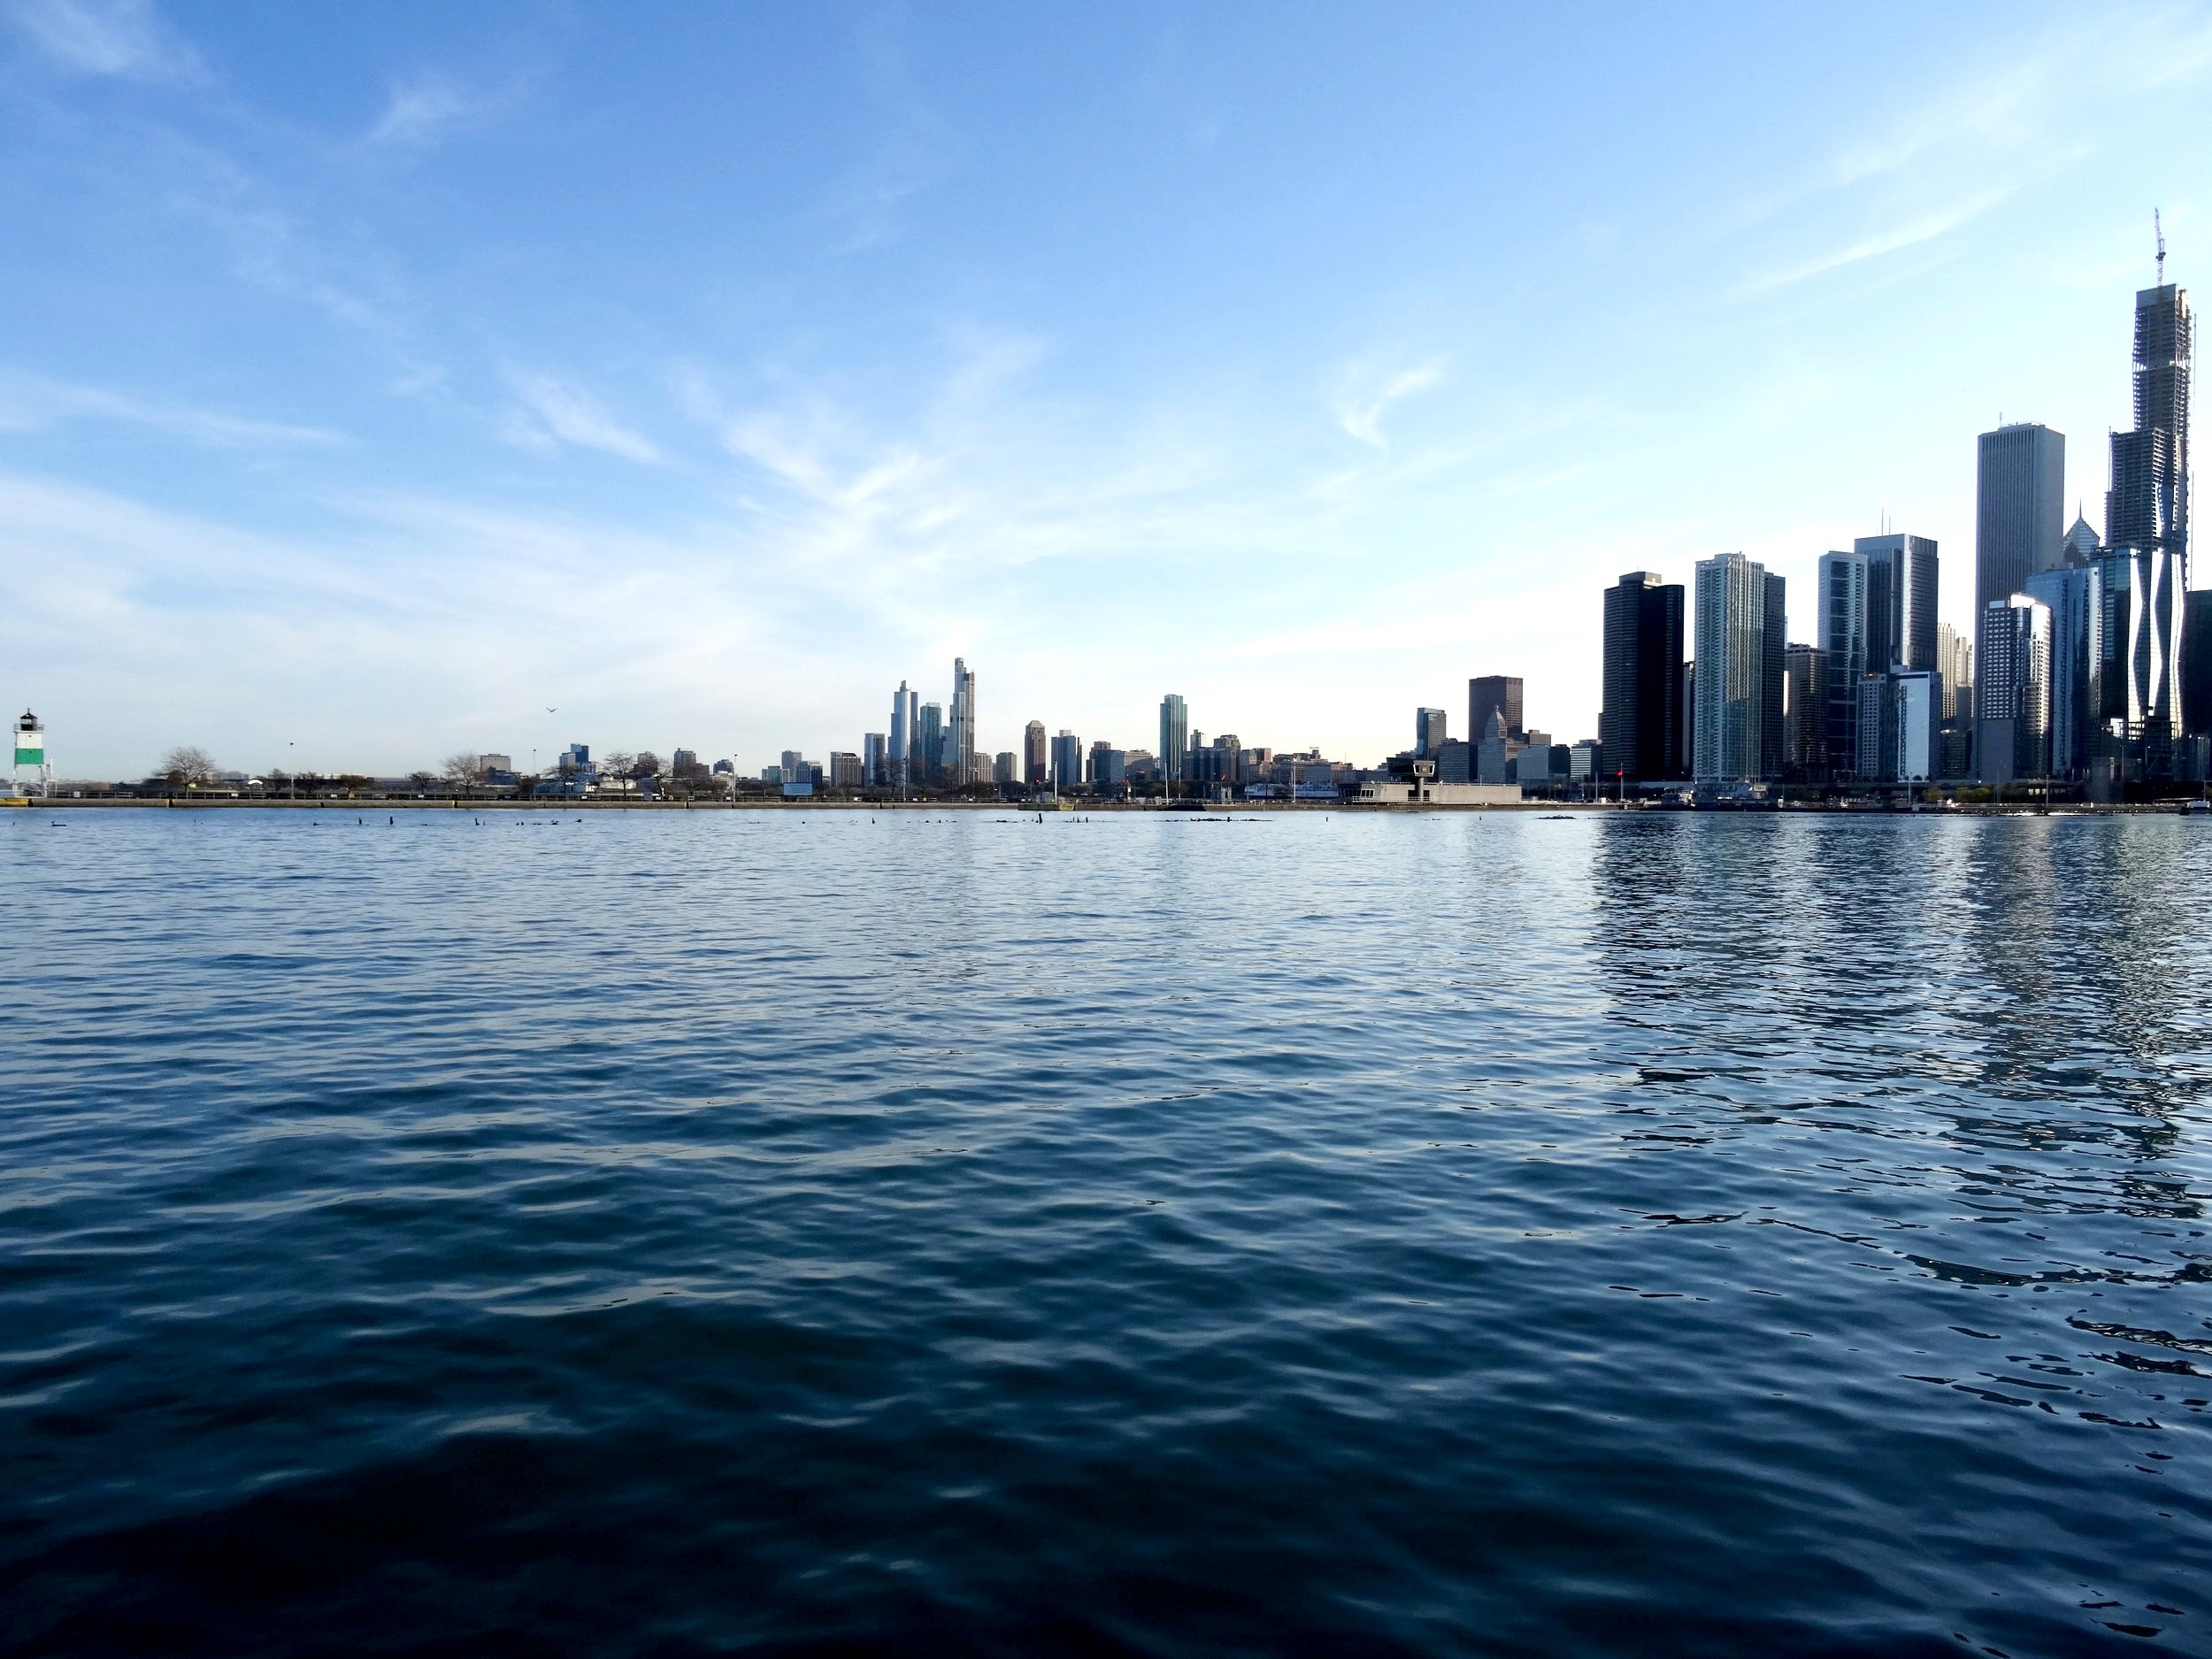 The Chicago skyline from Navy Pier